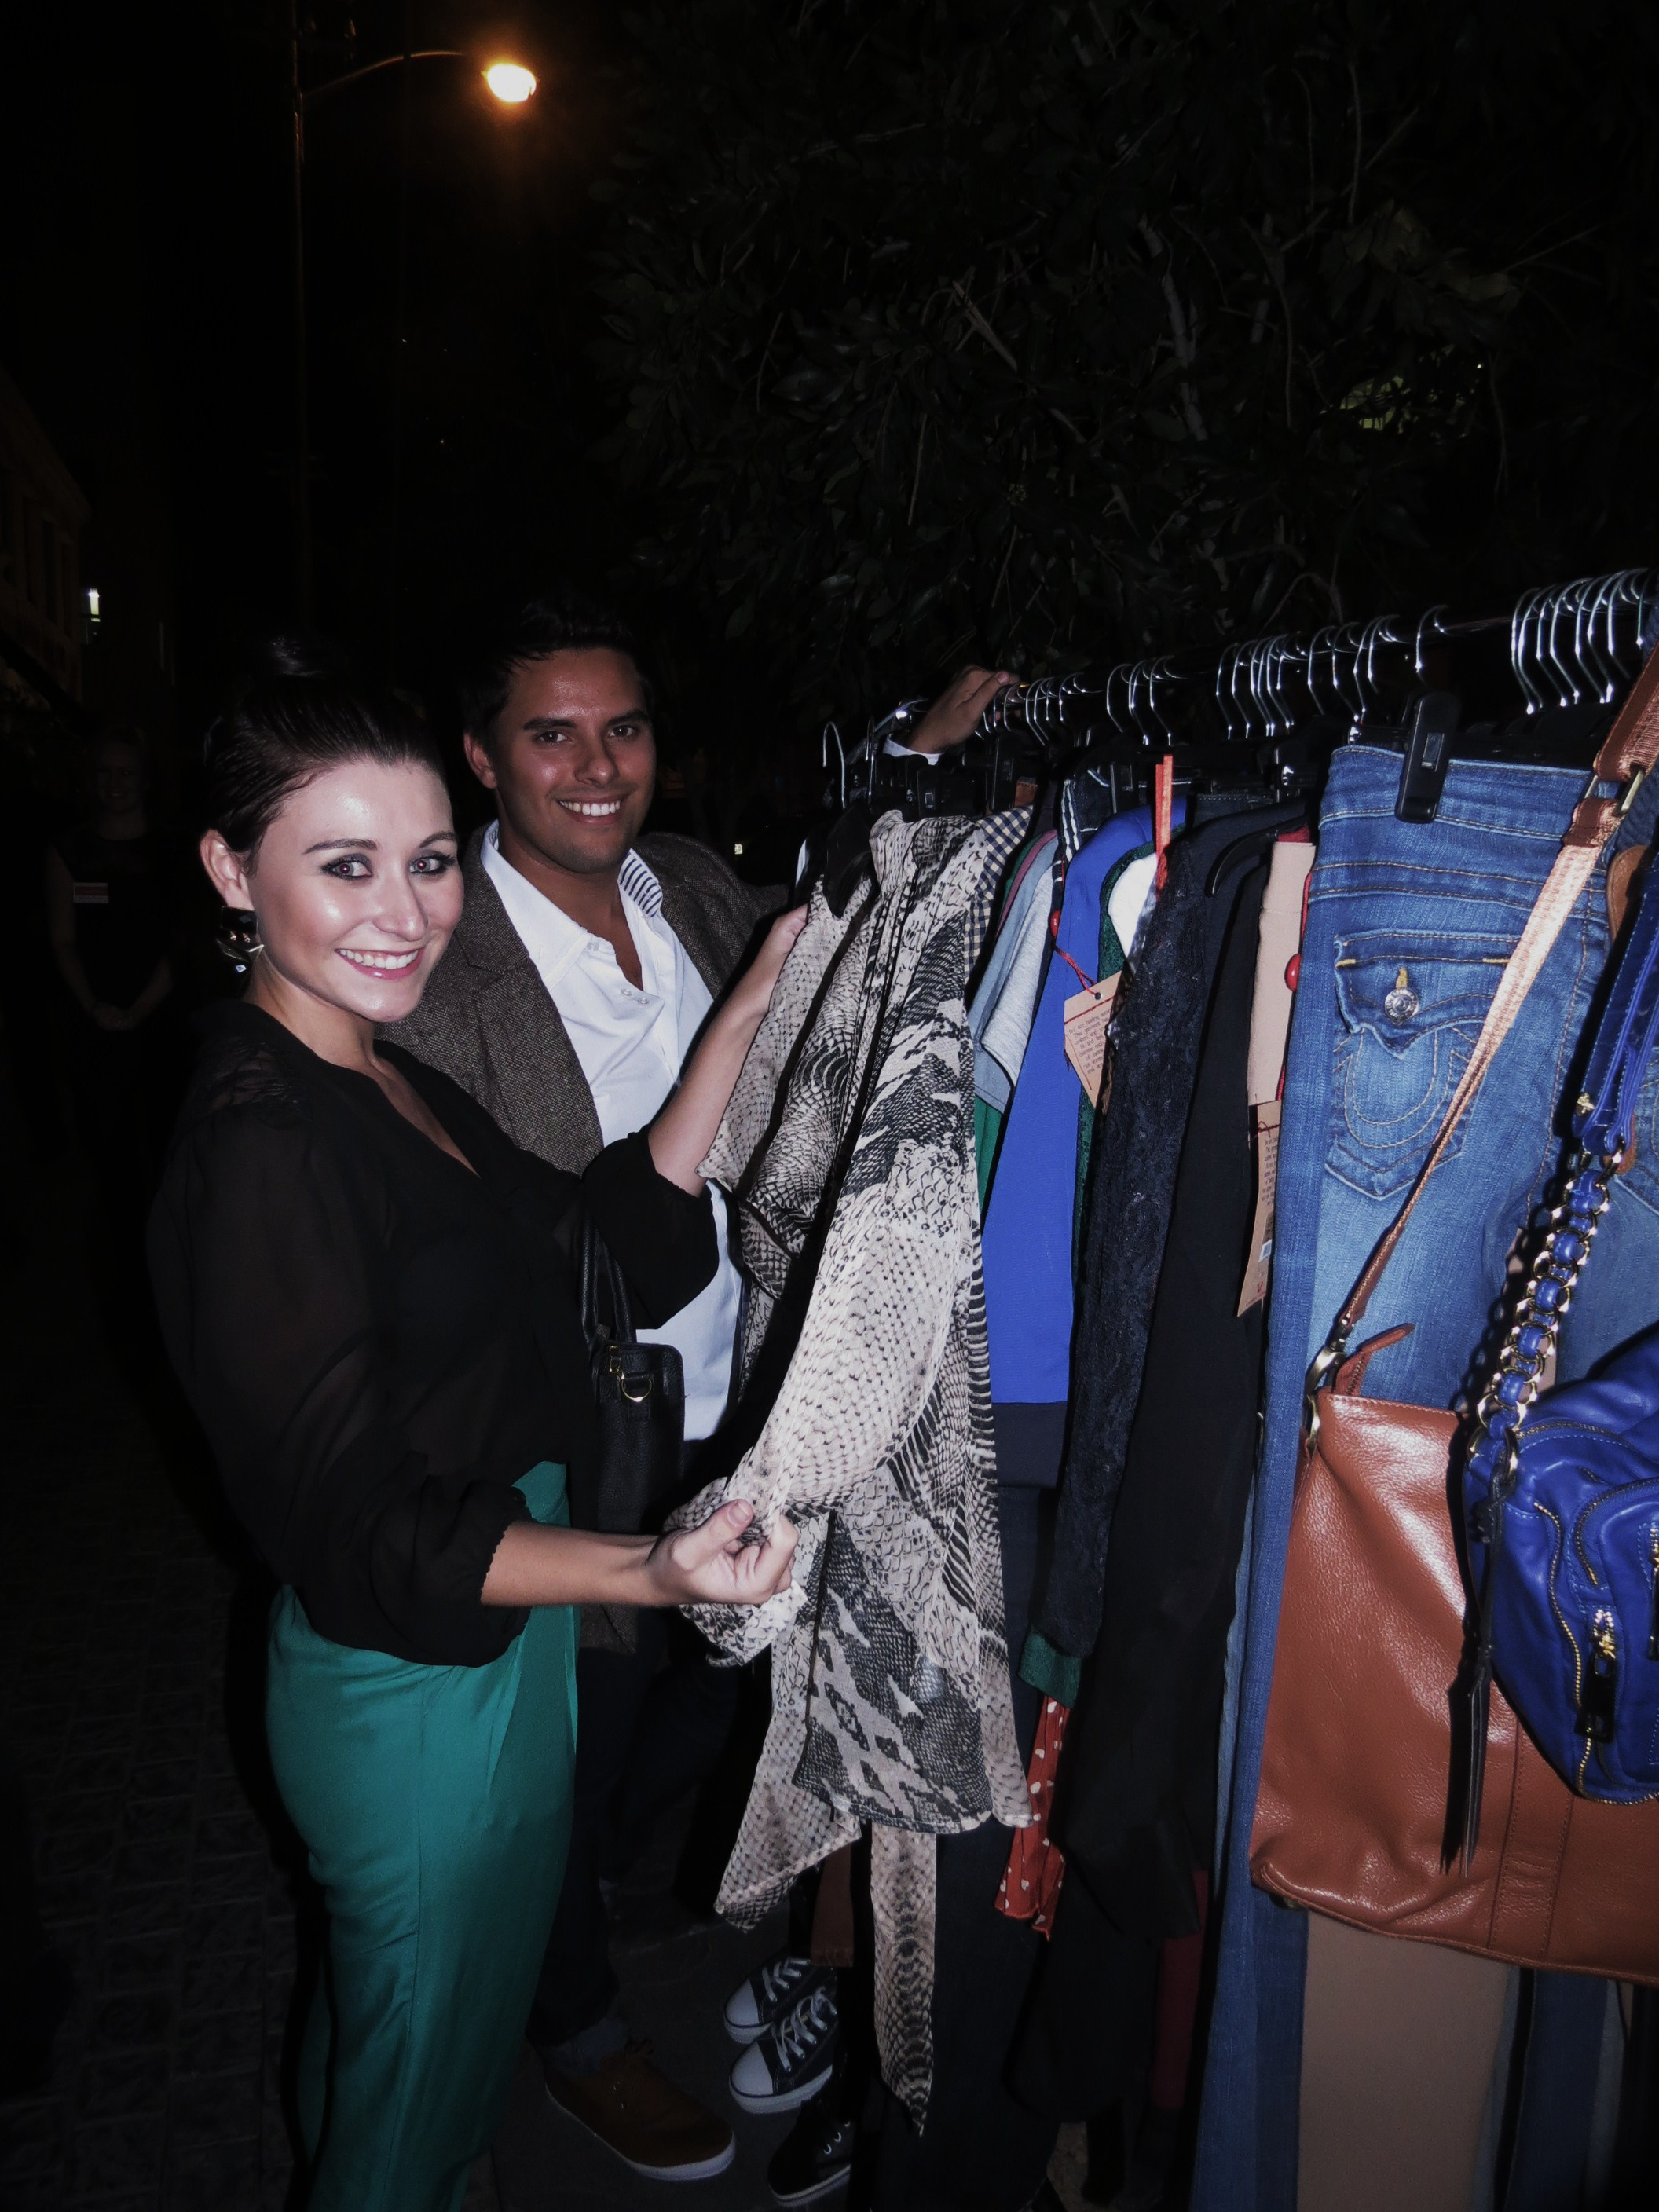 Zando Online fashion Launch in Cape Town